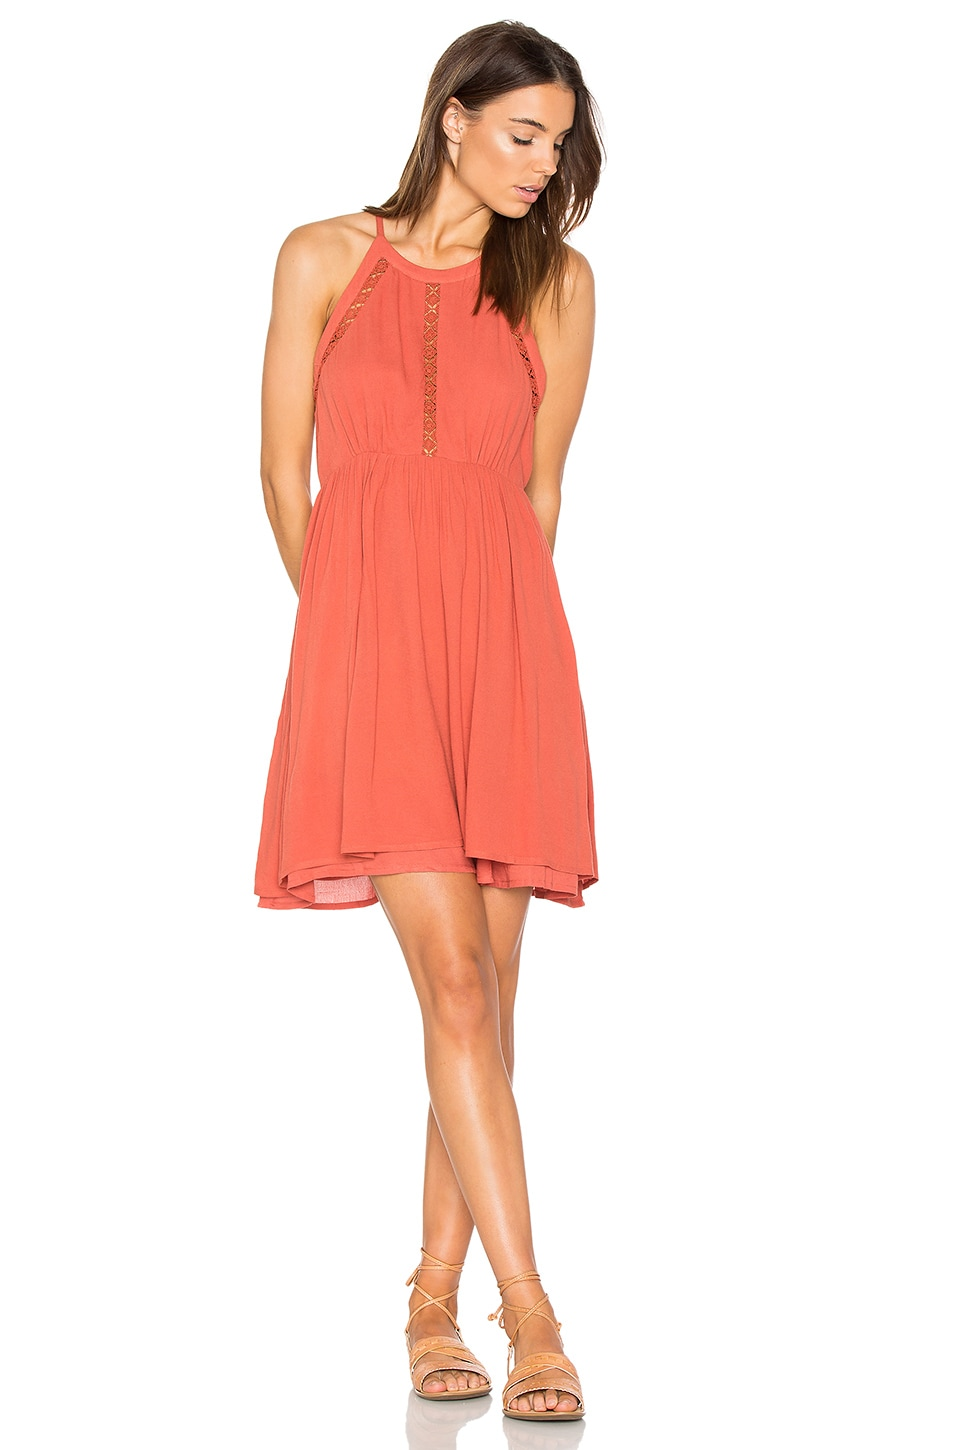 HEARTLOOM Grace Dress in Terracotta